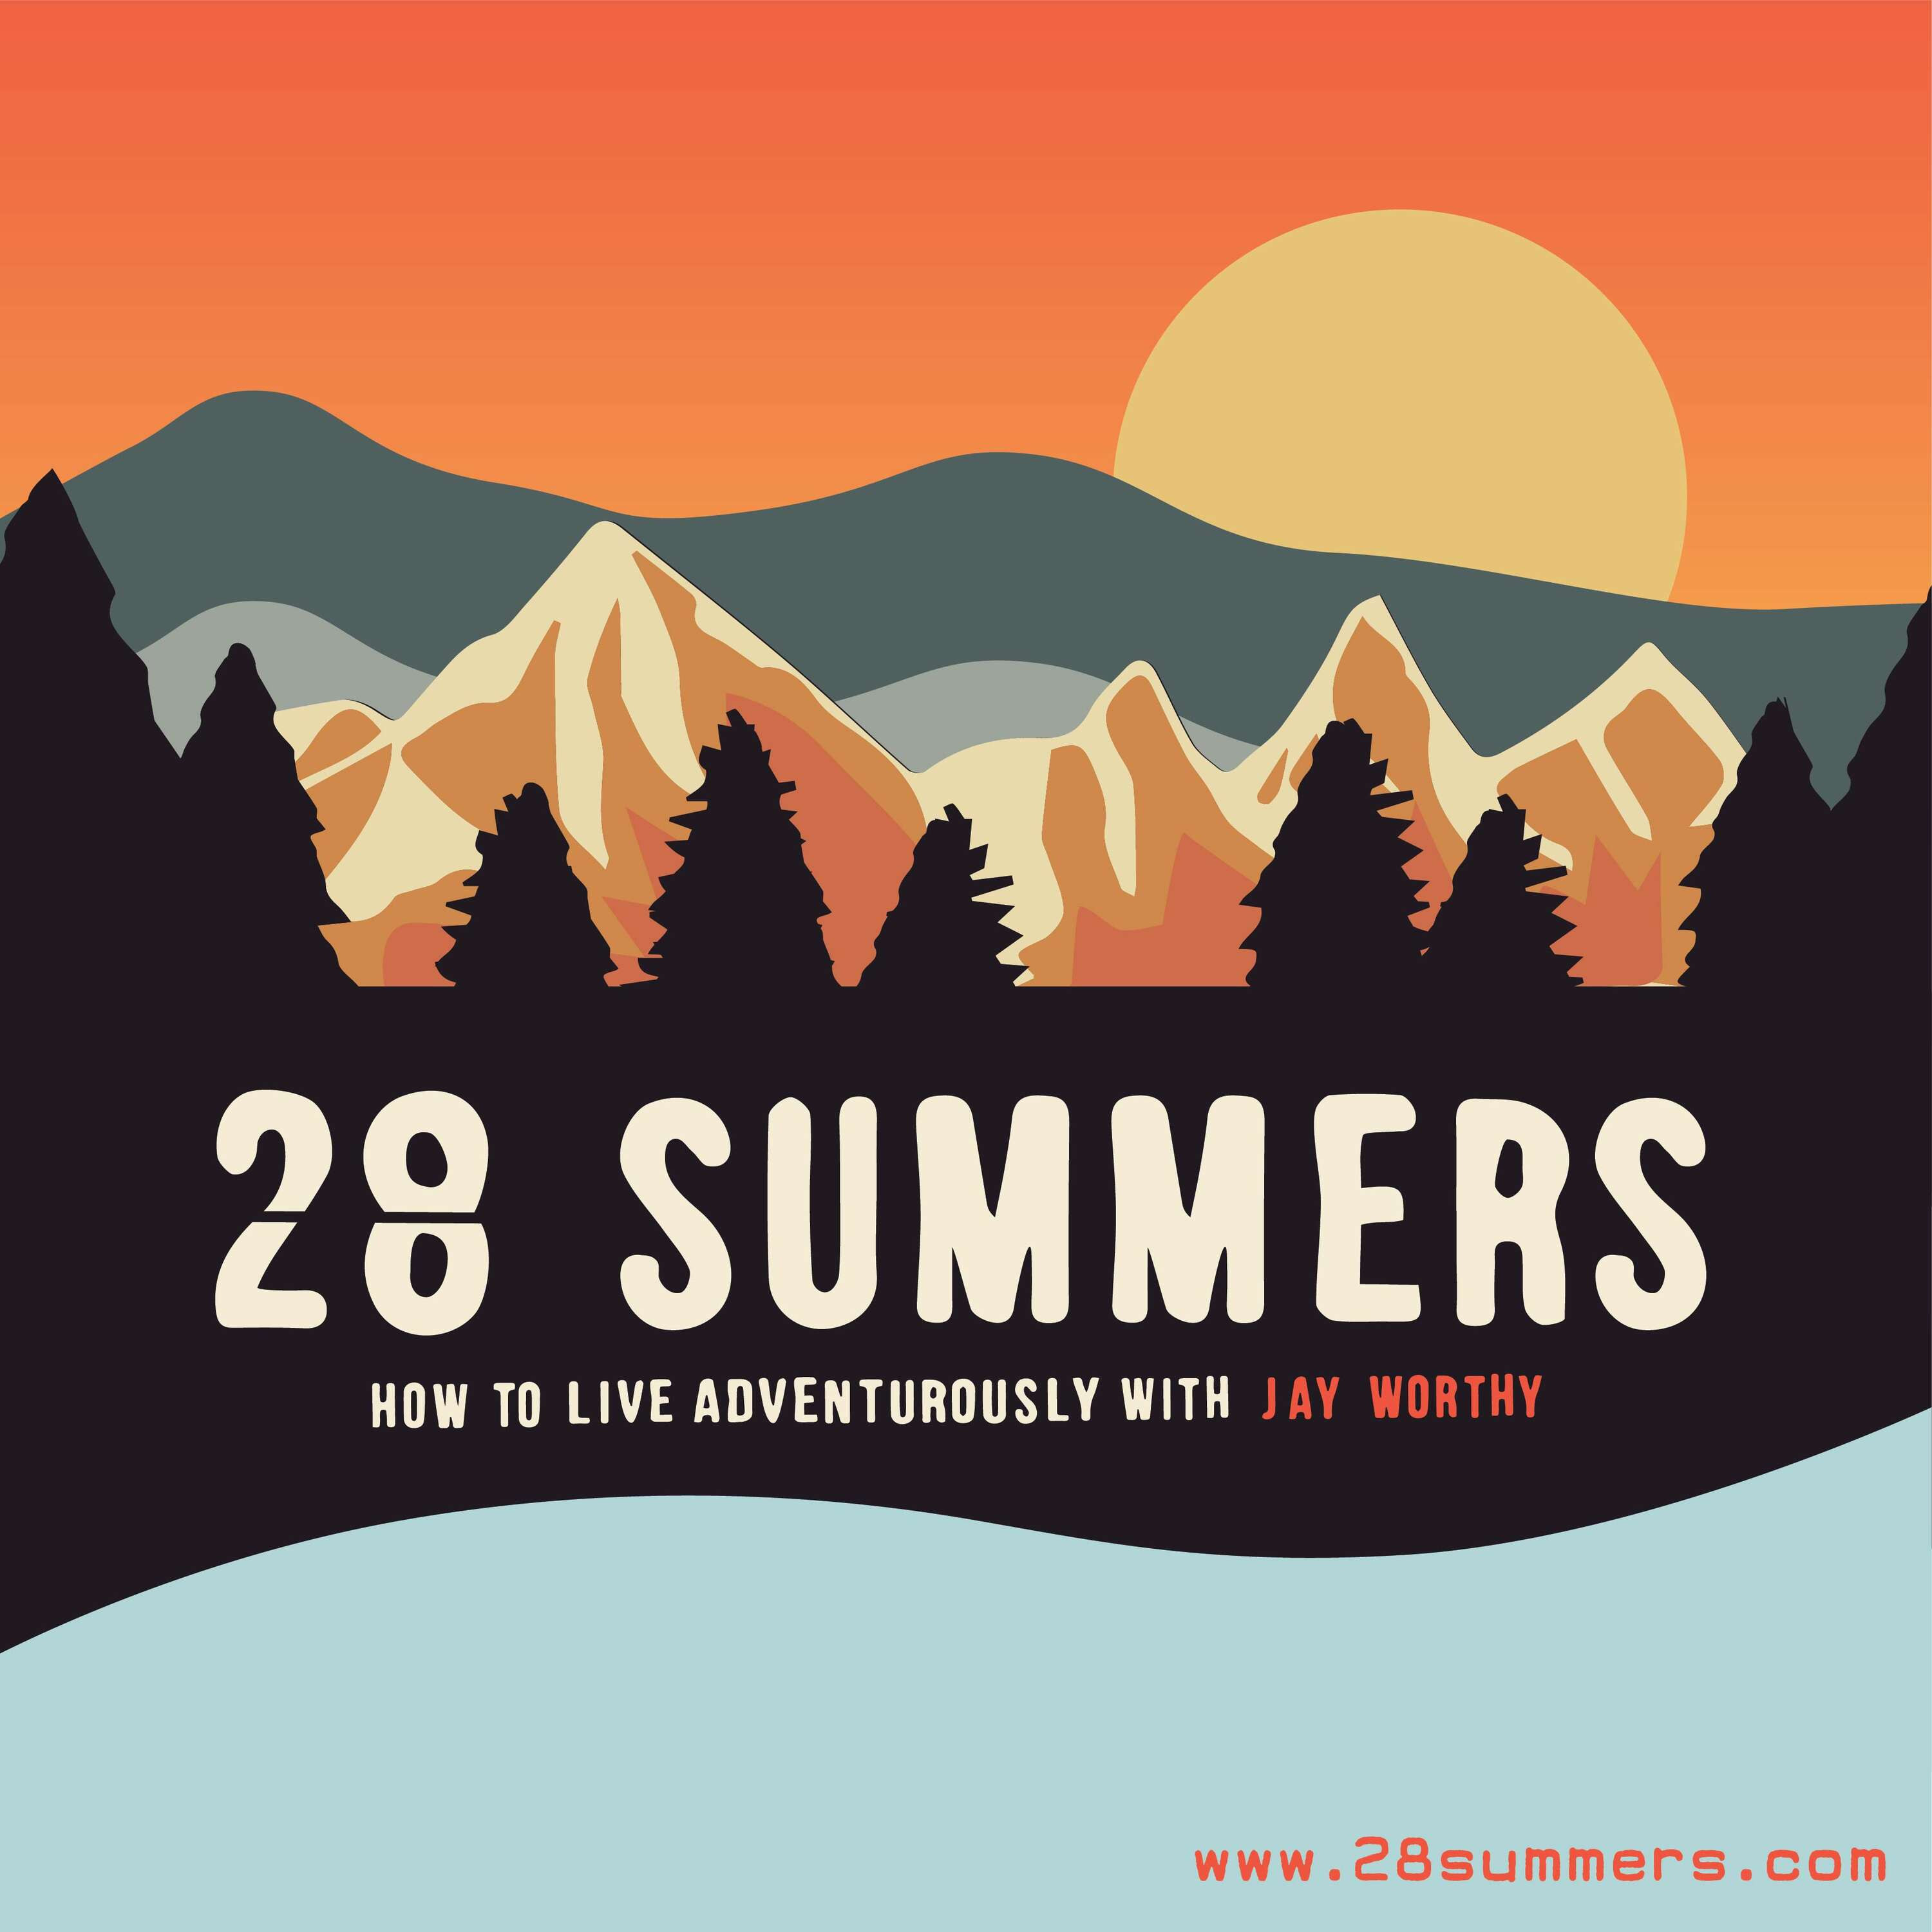 28 Summers - Live Adventurously